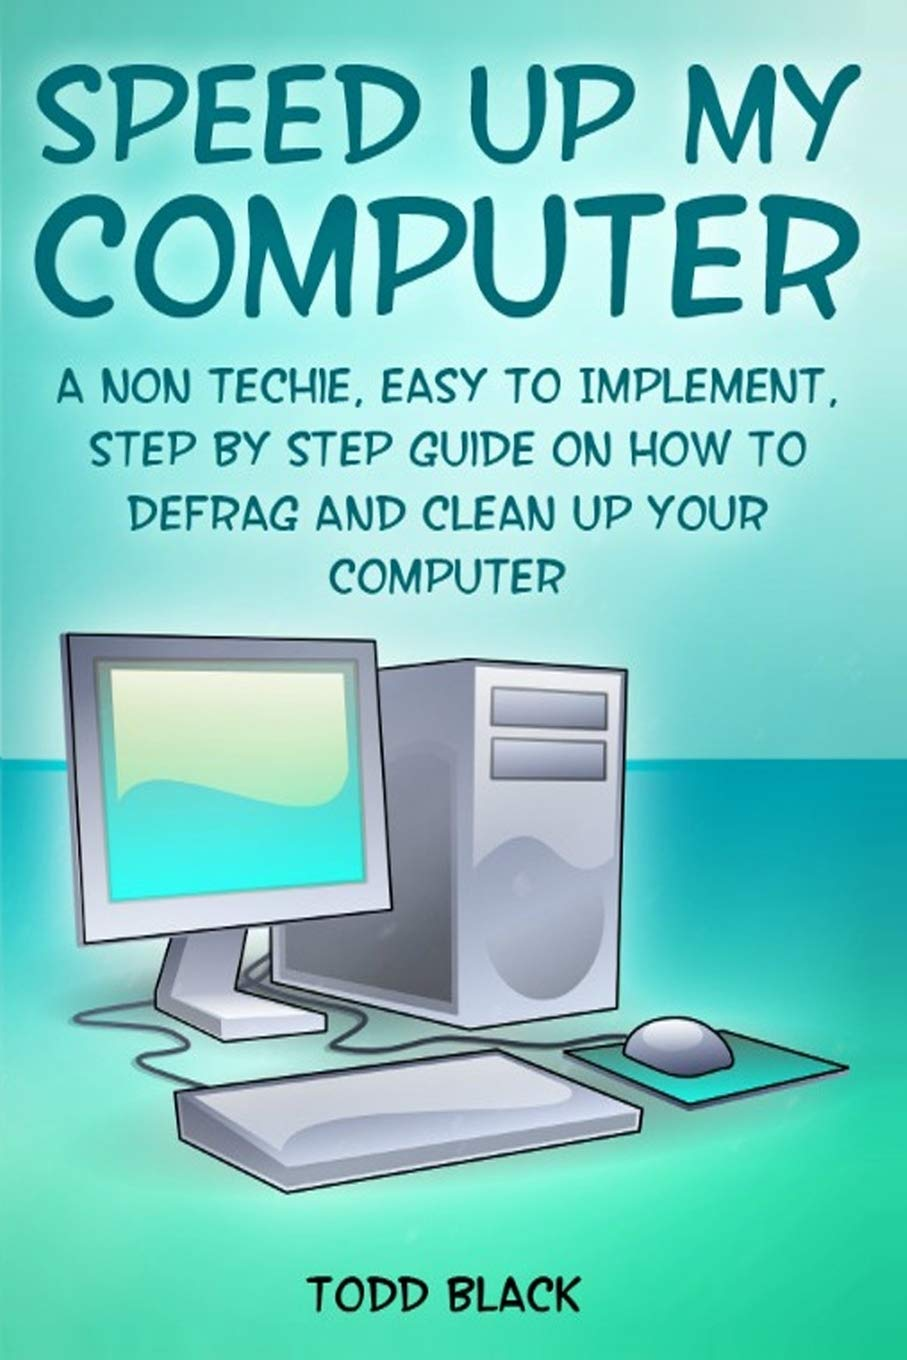 Speed Up My Computer: A Non Techie, Easy to Implement, Step By Step Guide On How to Defrag and Clean Up Your Computer pdf